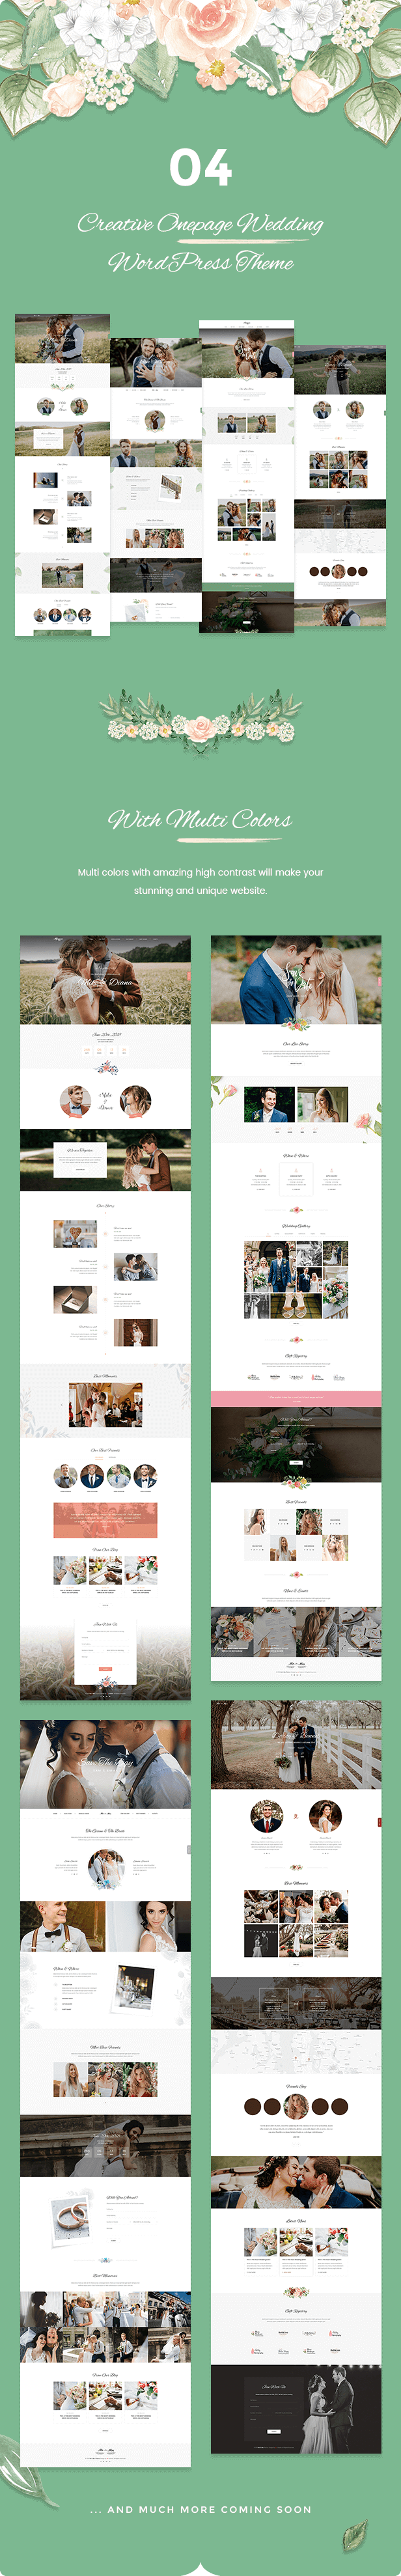 Sweetinz - Creative OnePage Wedding WordPress Theme